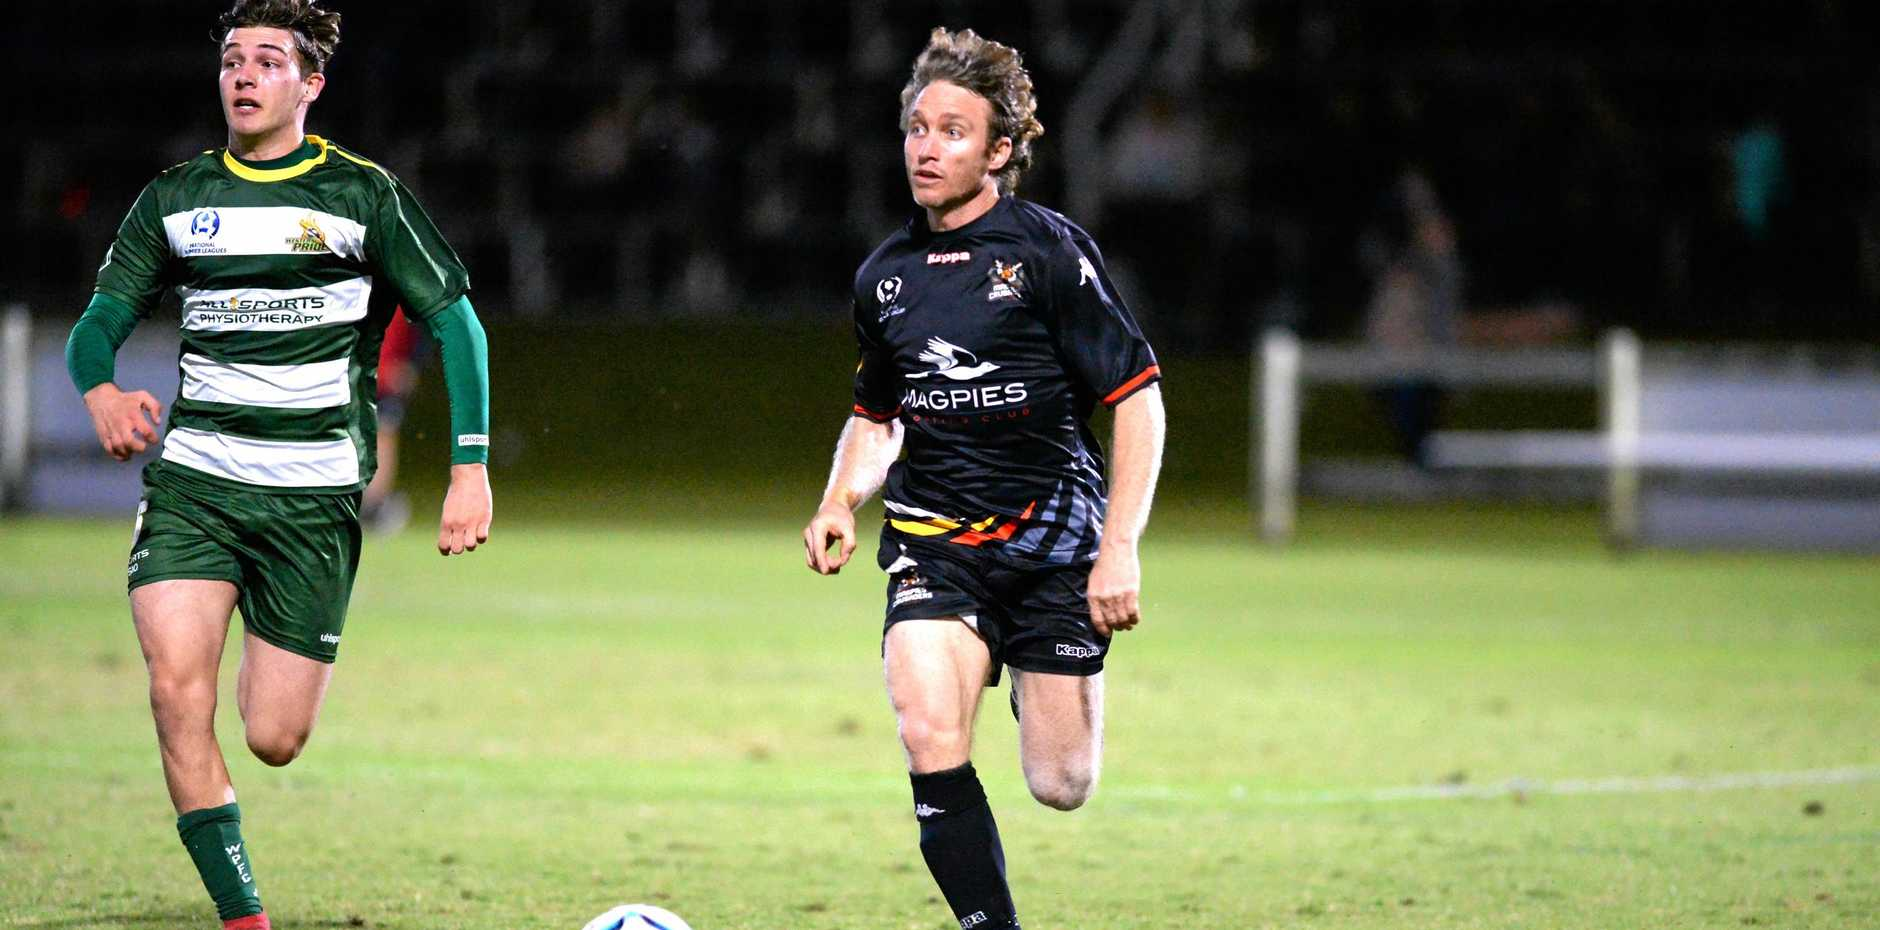 Magpies Crusaders' Allen Jackson is pursued by a Western Pride player in the NPL Queensland Round Four catch-up match at Sologinkin Oval, Mackay, on Saturday.